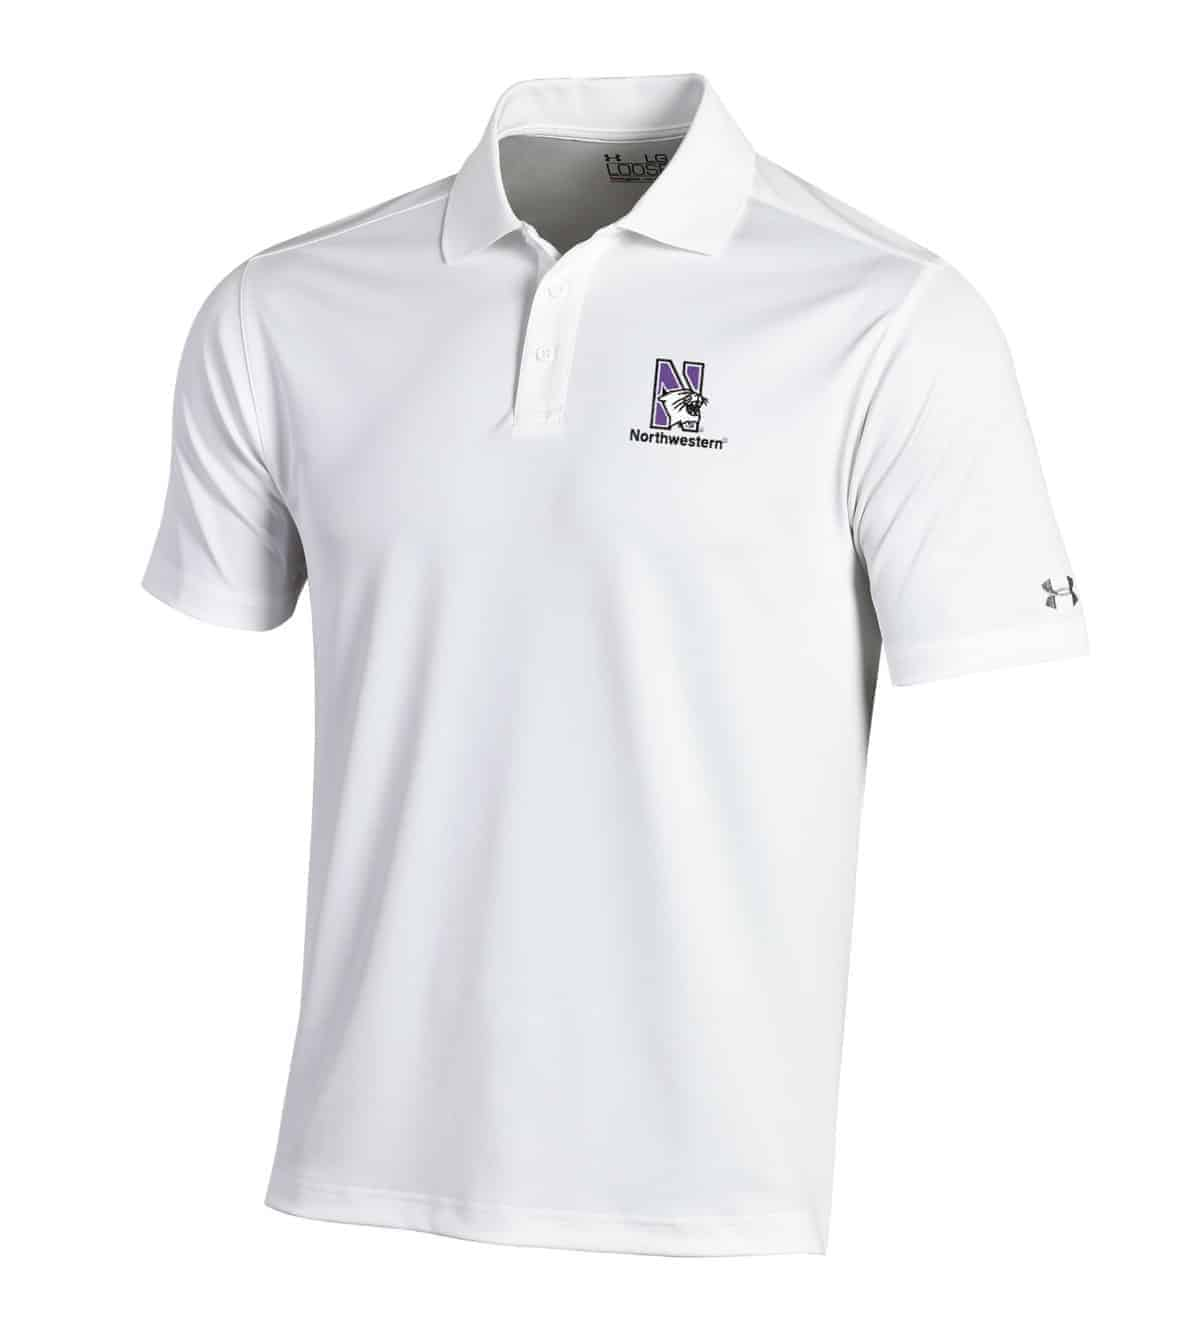 e70a1befa Northwestern University Wildcats Under Armour Solid White Polo Shirt with  Left Chest N-Cat Northwestern